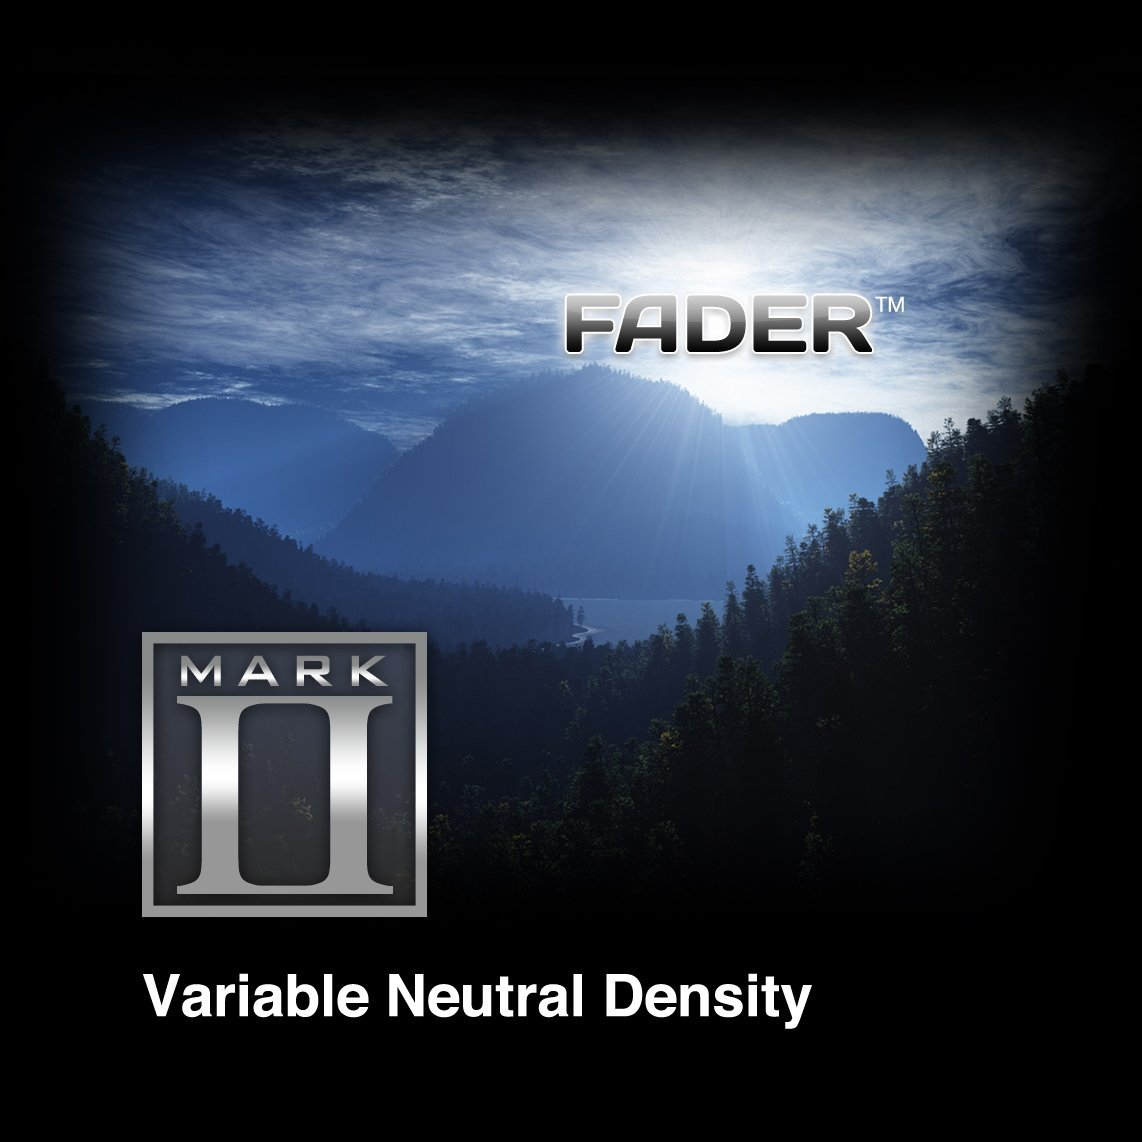 Cheap Variable Neutral Density Filters Find Lee 100x150 Graduated Nd Soft Set Get Quotations Fader 52mm Mark Ii Filter Camera